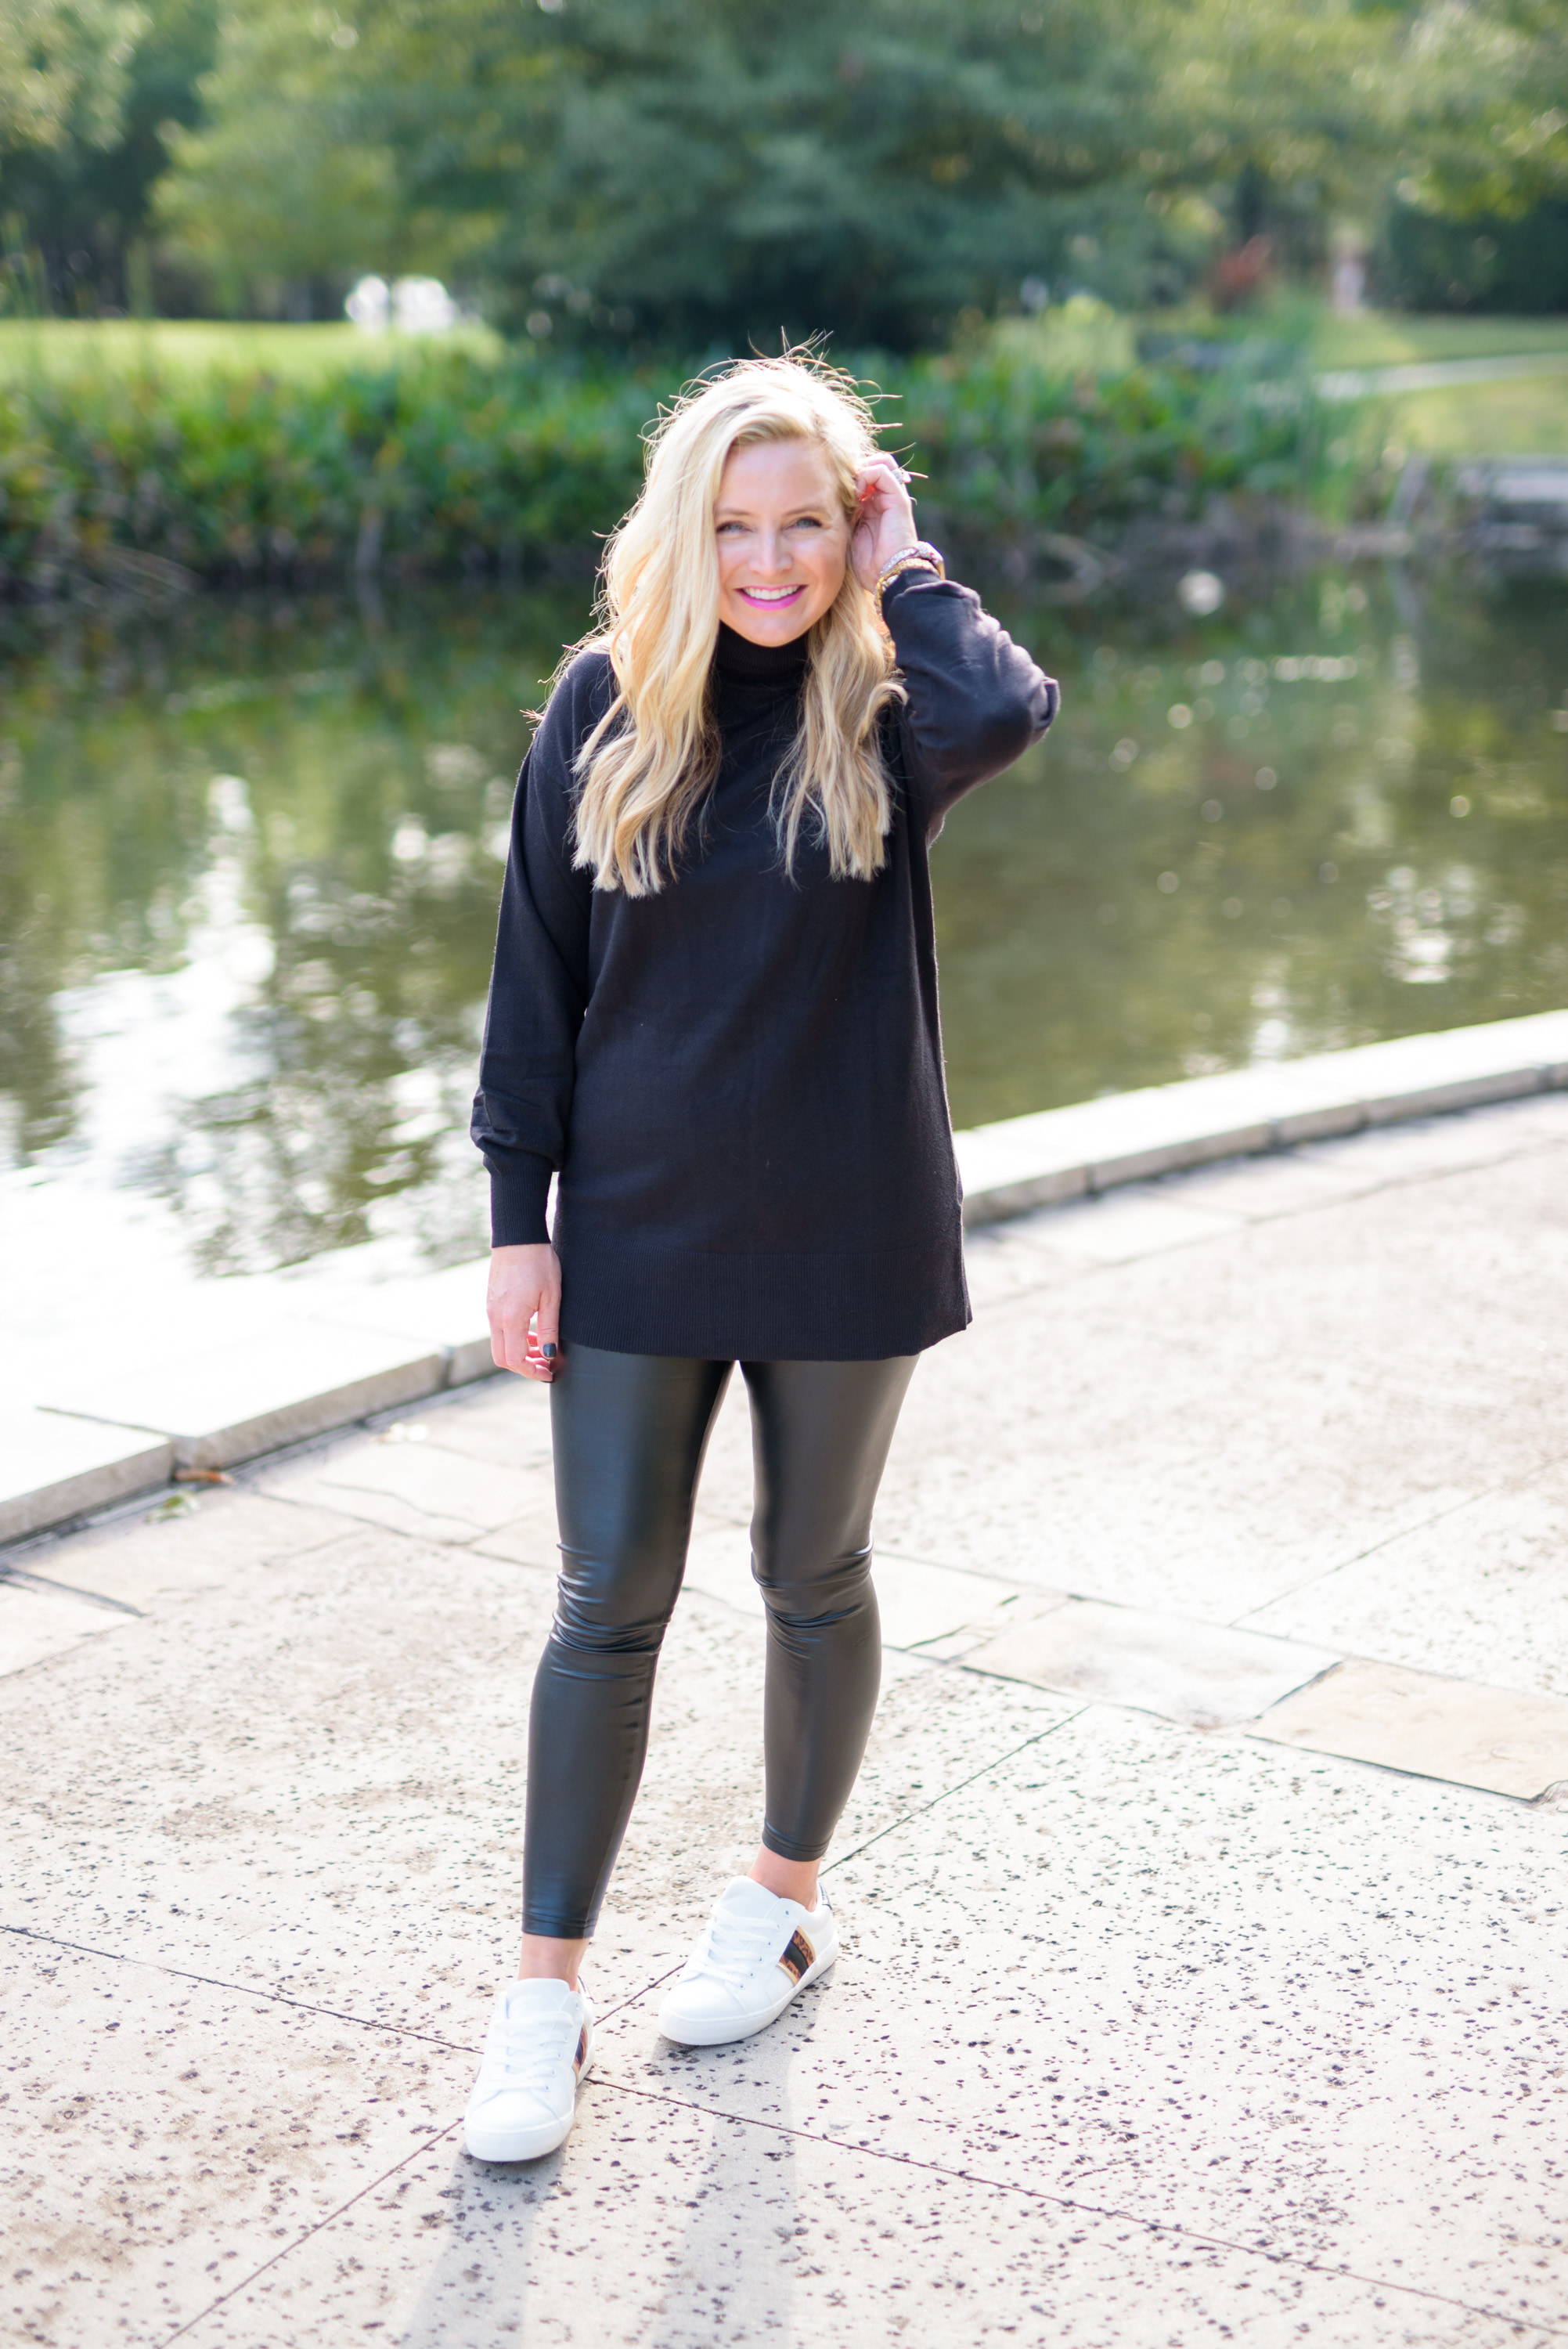 Faux Leather by popular Houston fashion blog, Fancy Ashley: image of a woman wearing a pair of faux leather leggings, white sneakers, and a black turtleneck sweater.